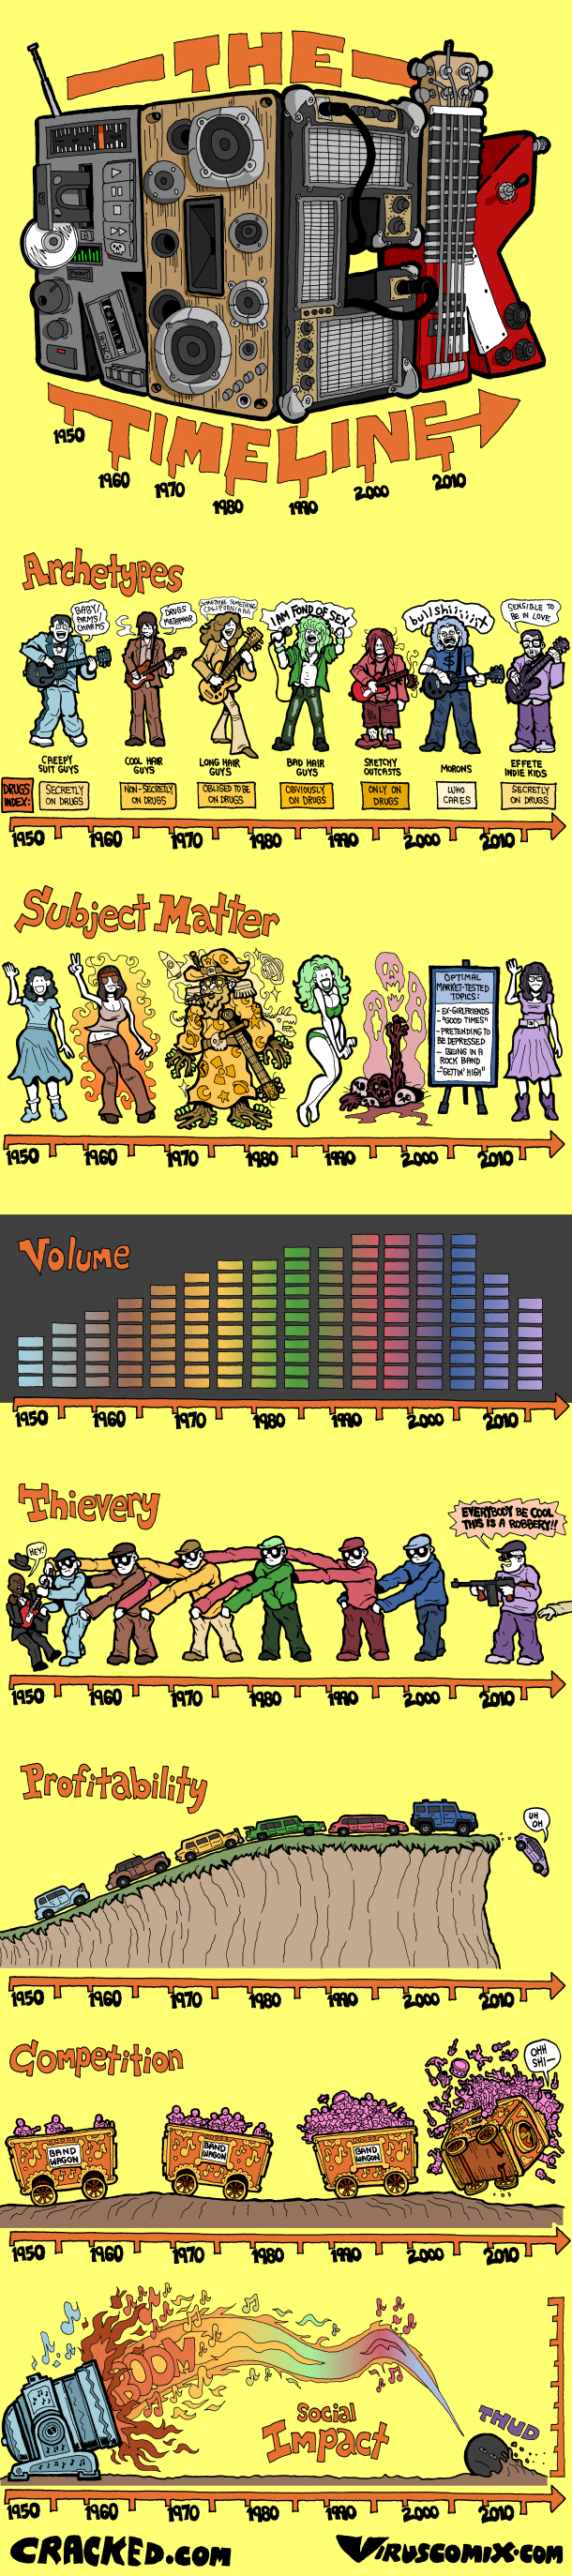 History of Rock Music: The Comic Book Version - Infographic